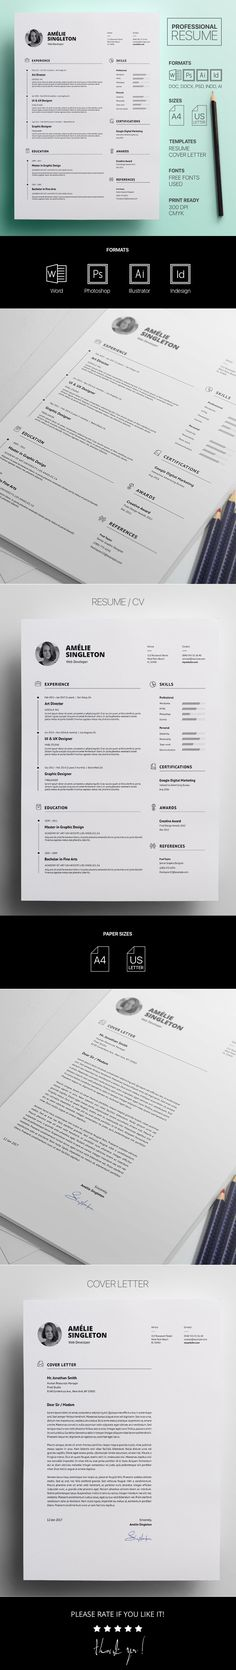 CV Template - Professional Resume Template - Free Cover Letter - professional resume and cover letter